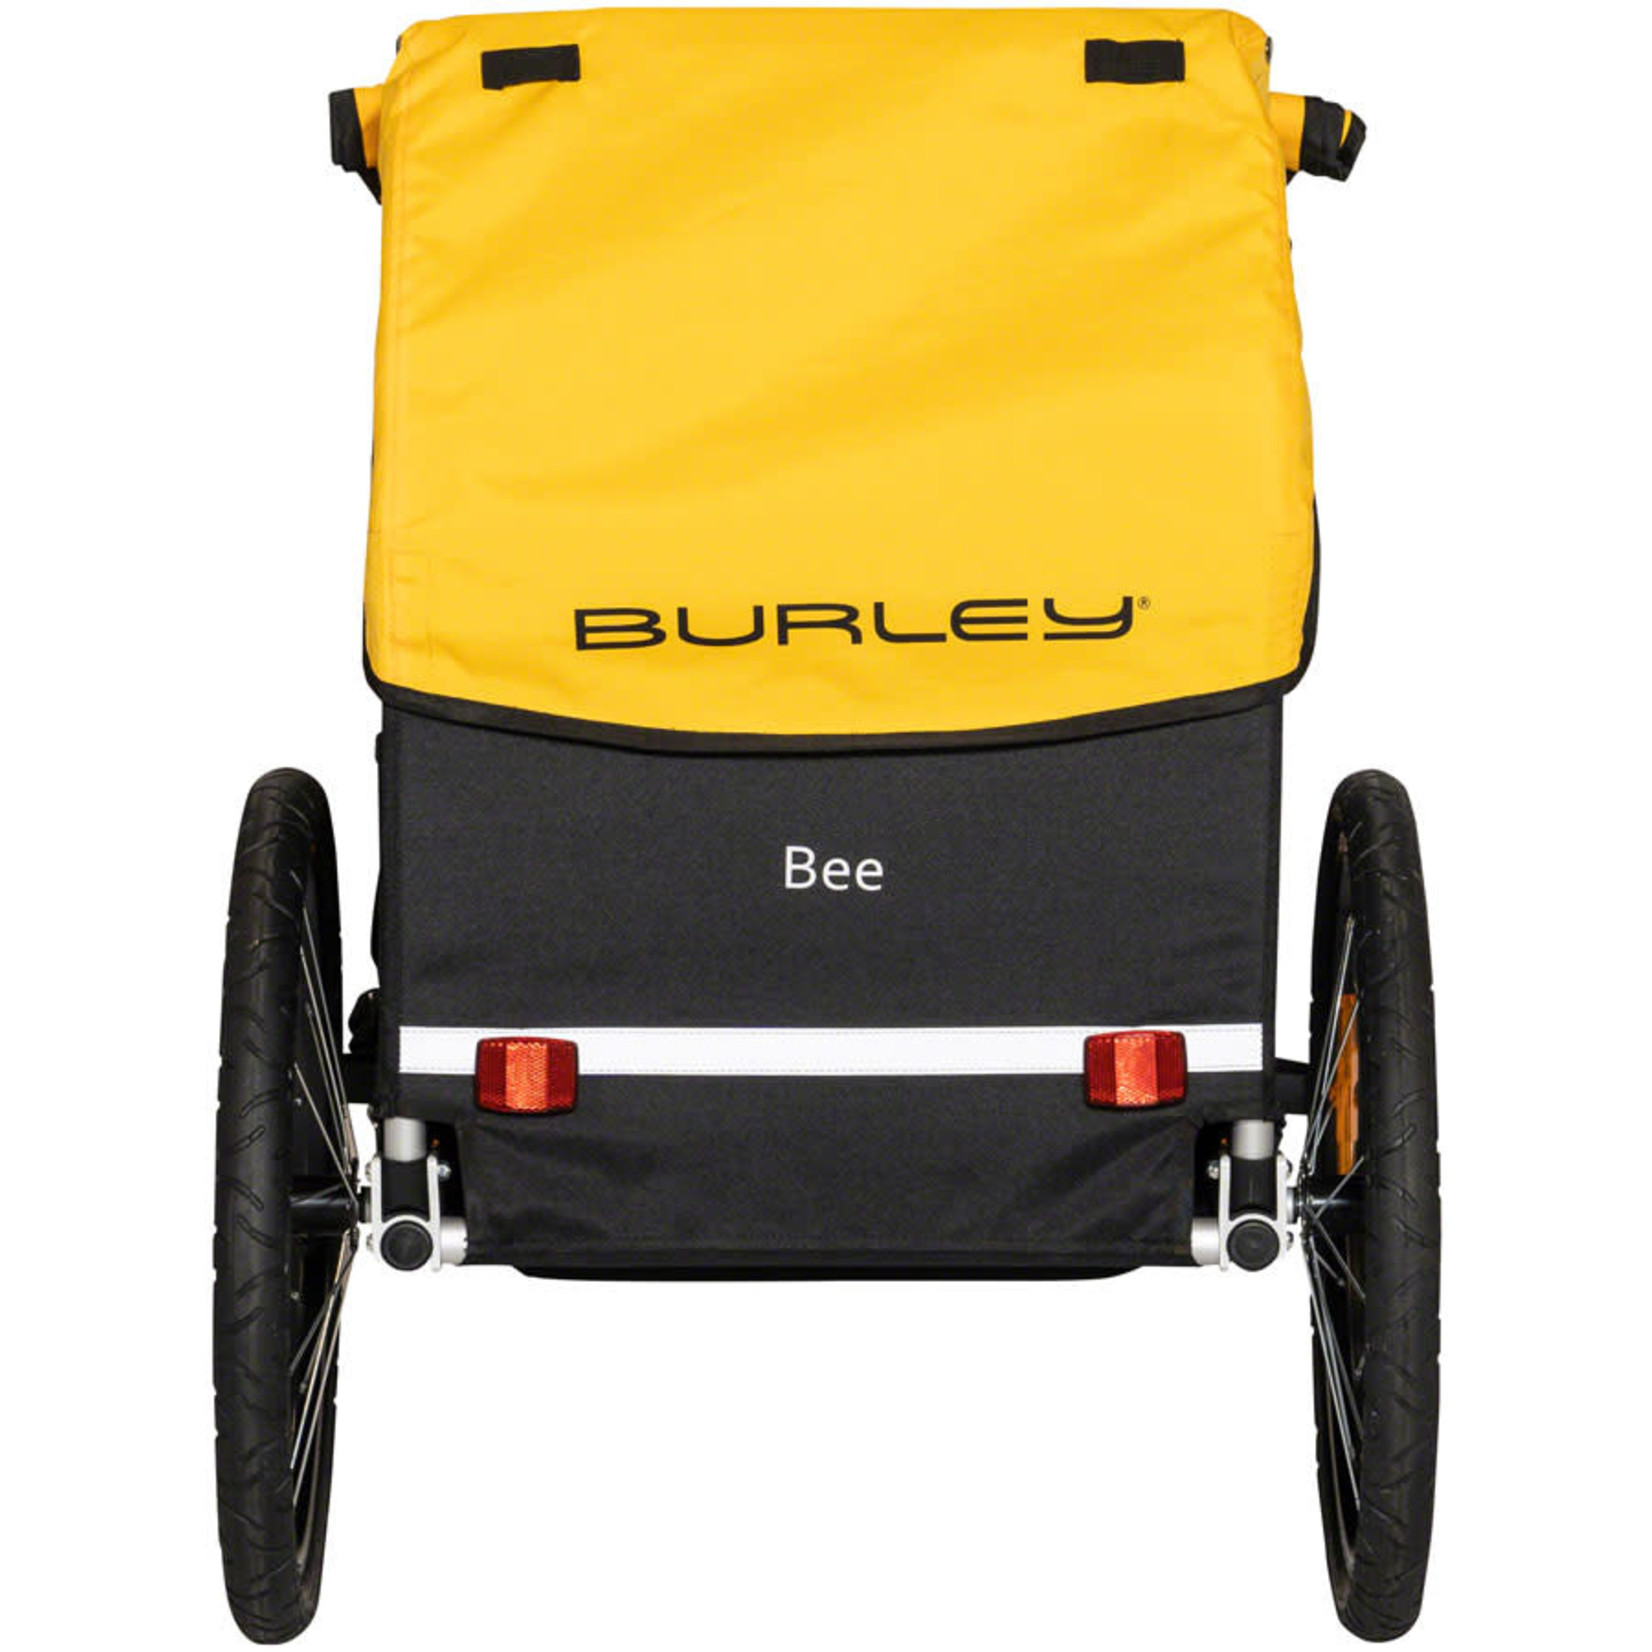 Burley Burley Bee Child Trailer - Single, Yellow